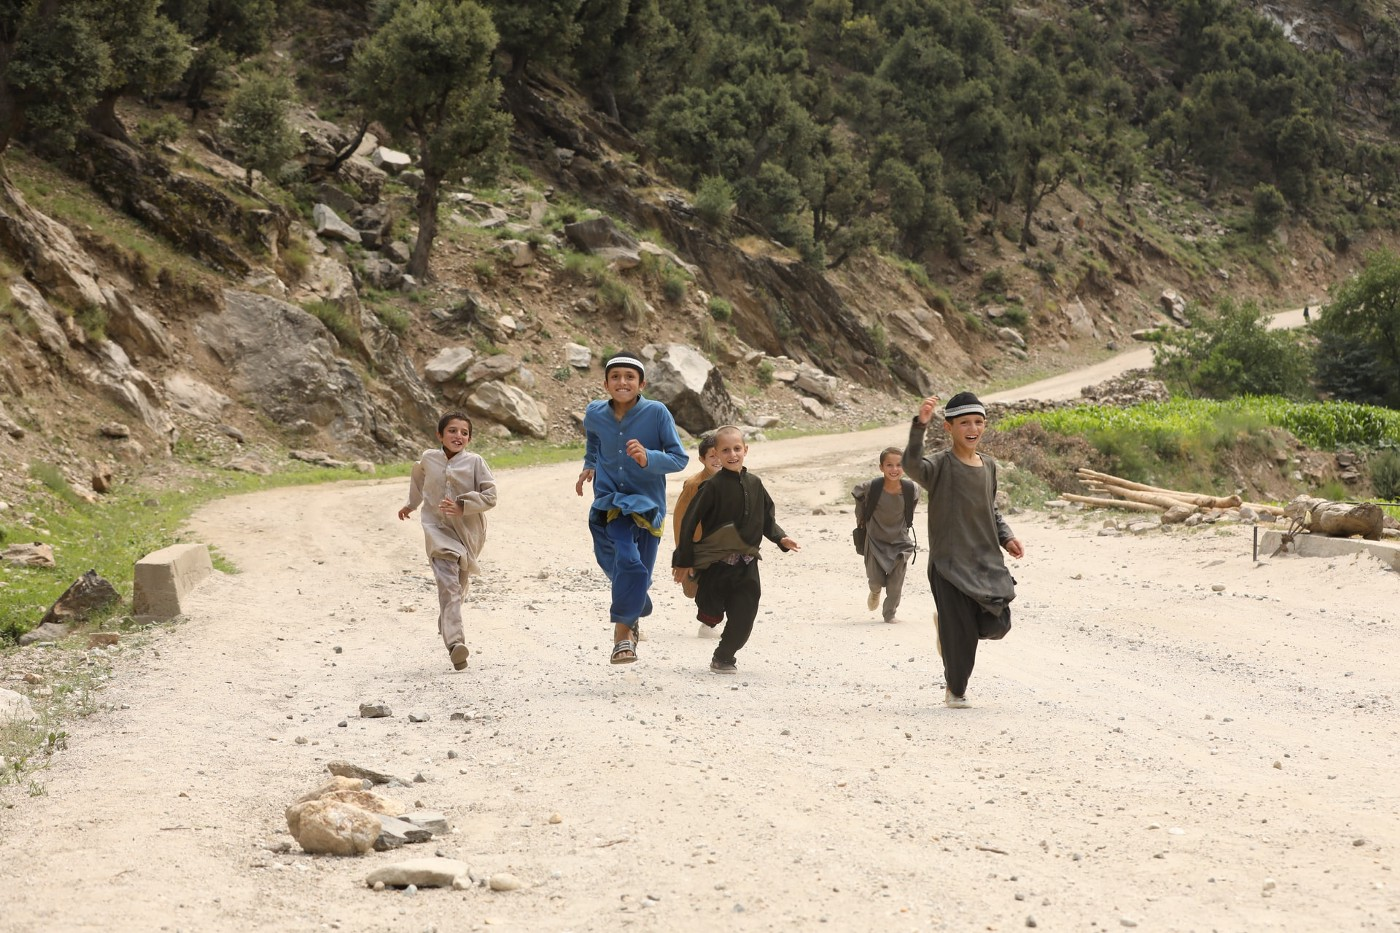 Children running along a road in Afghanistan.